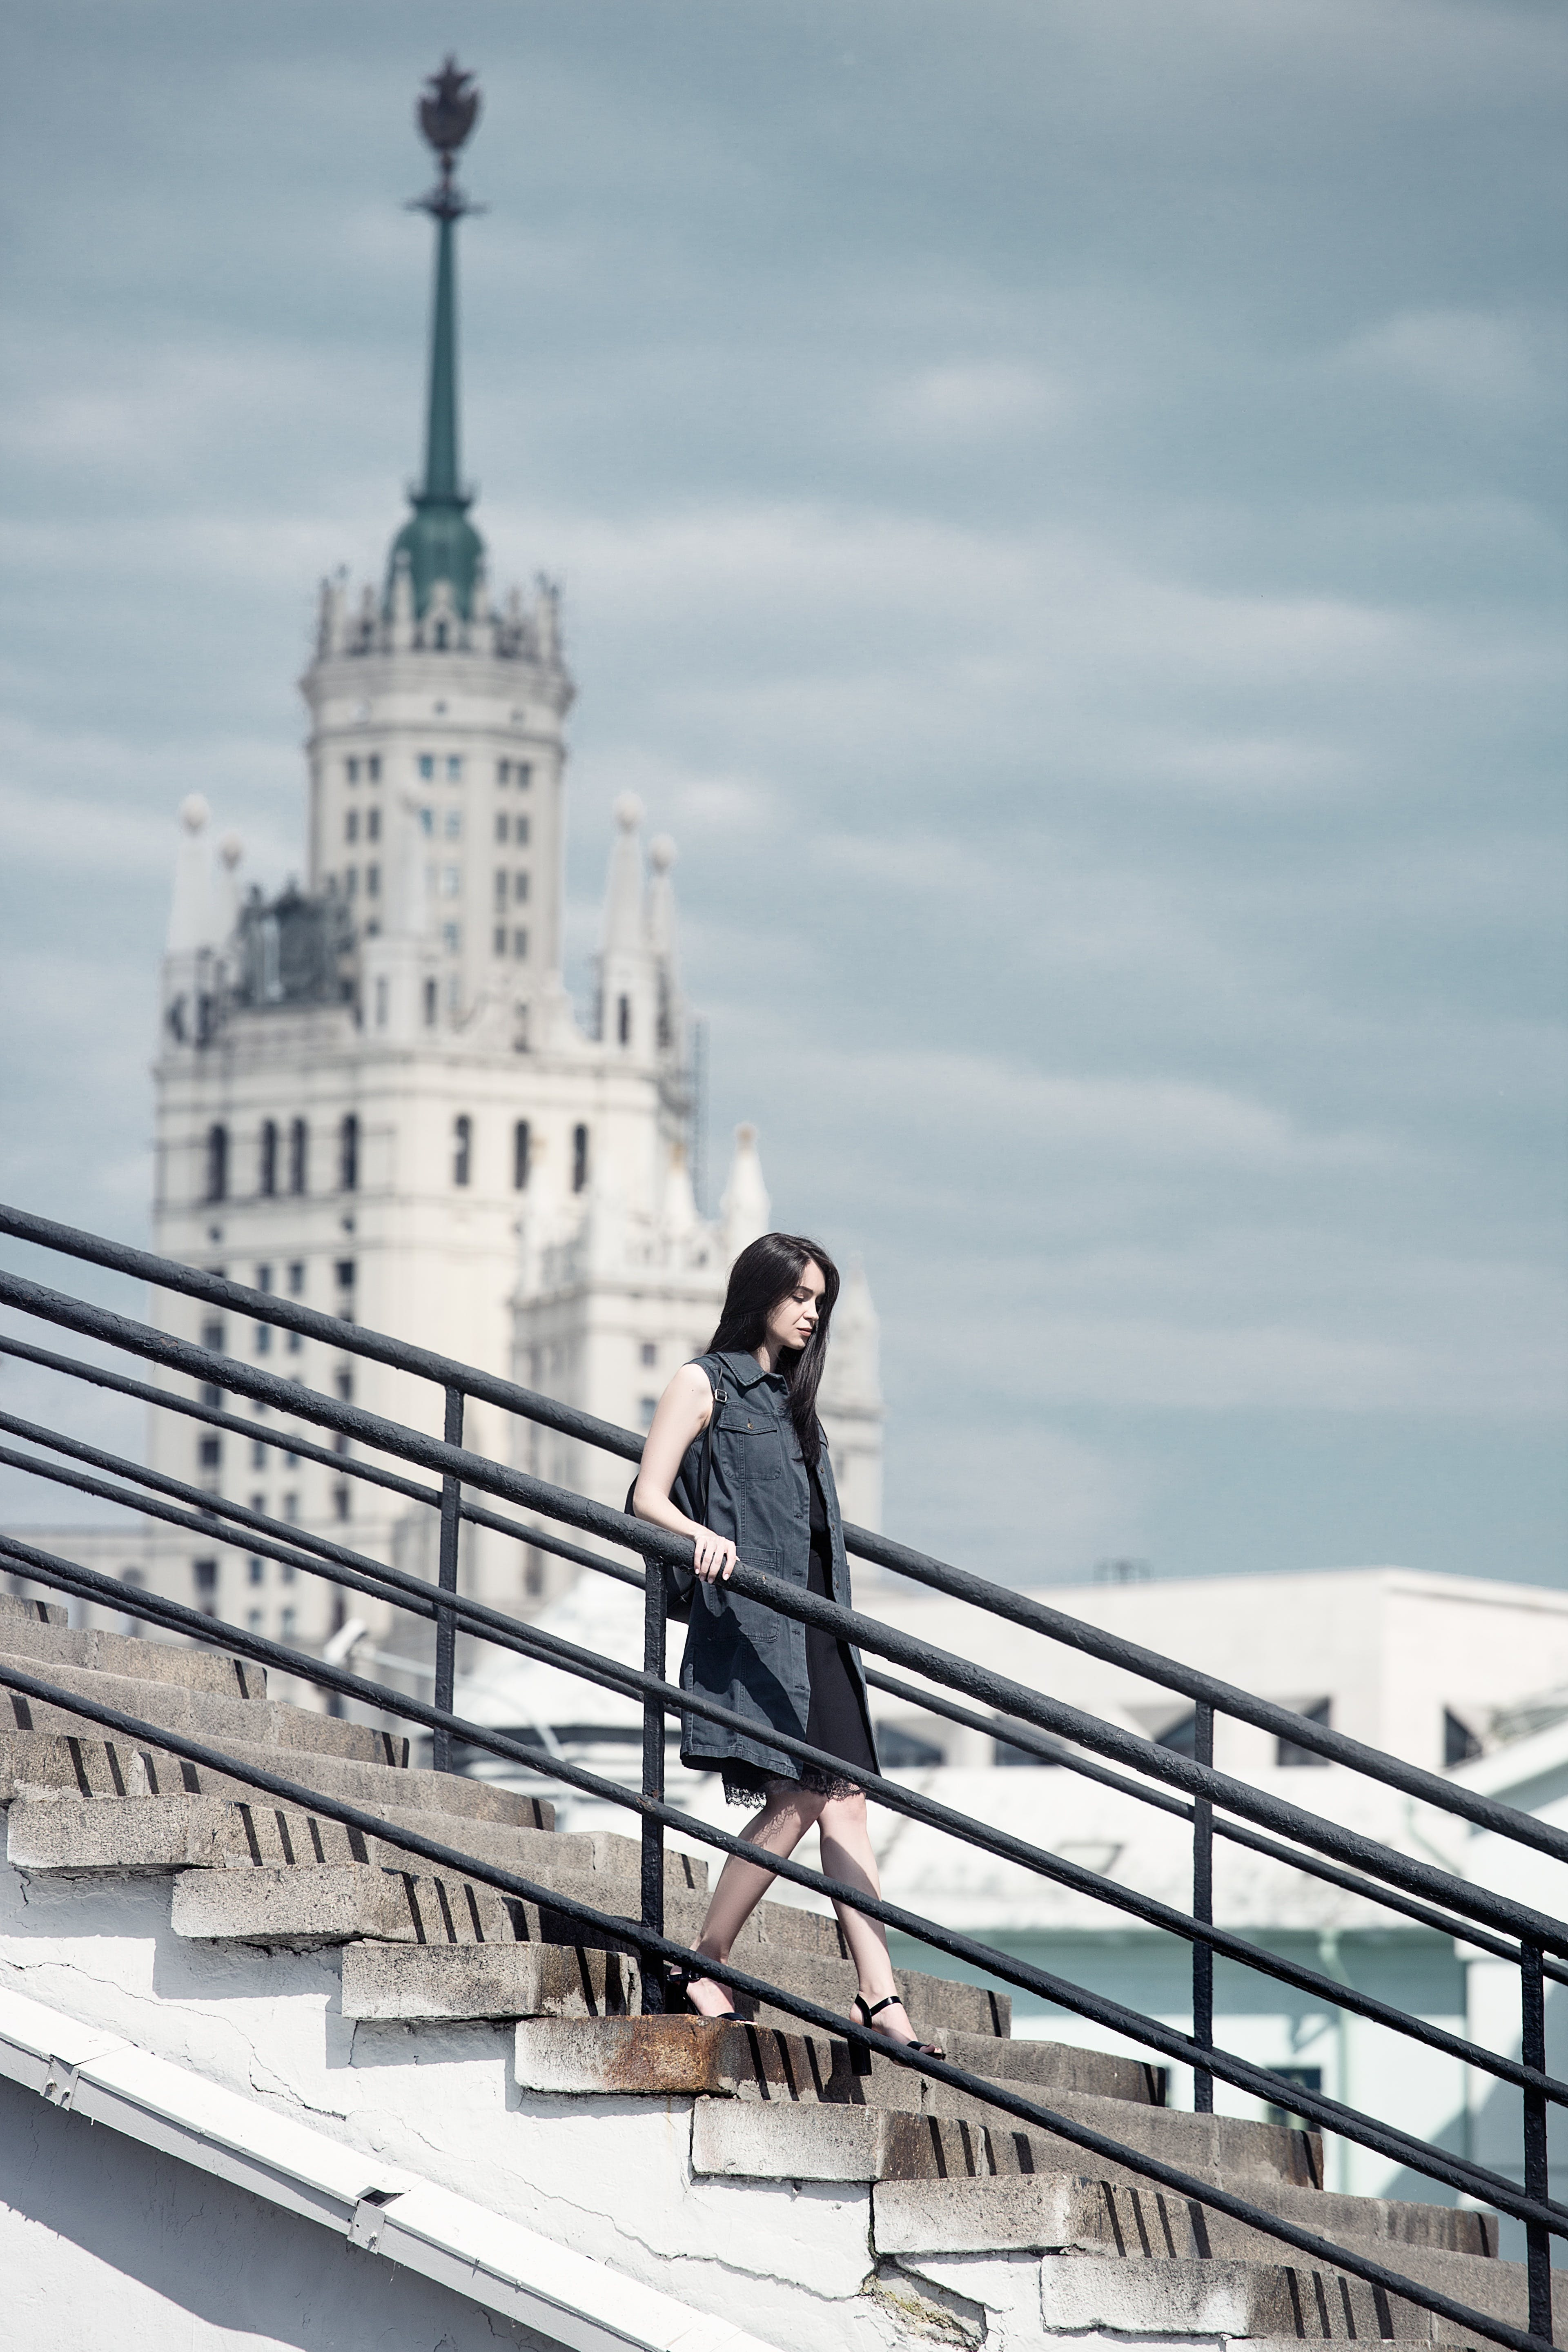 Woman Walking on Gray Concrete Stair Under Gray Sky